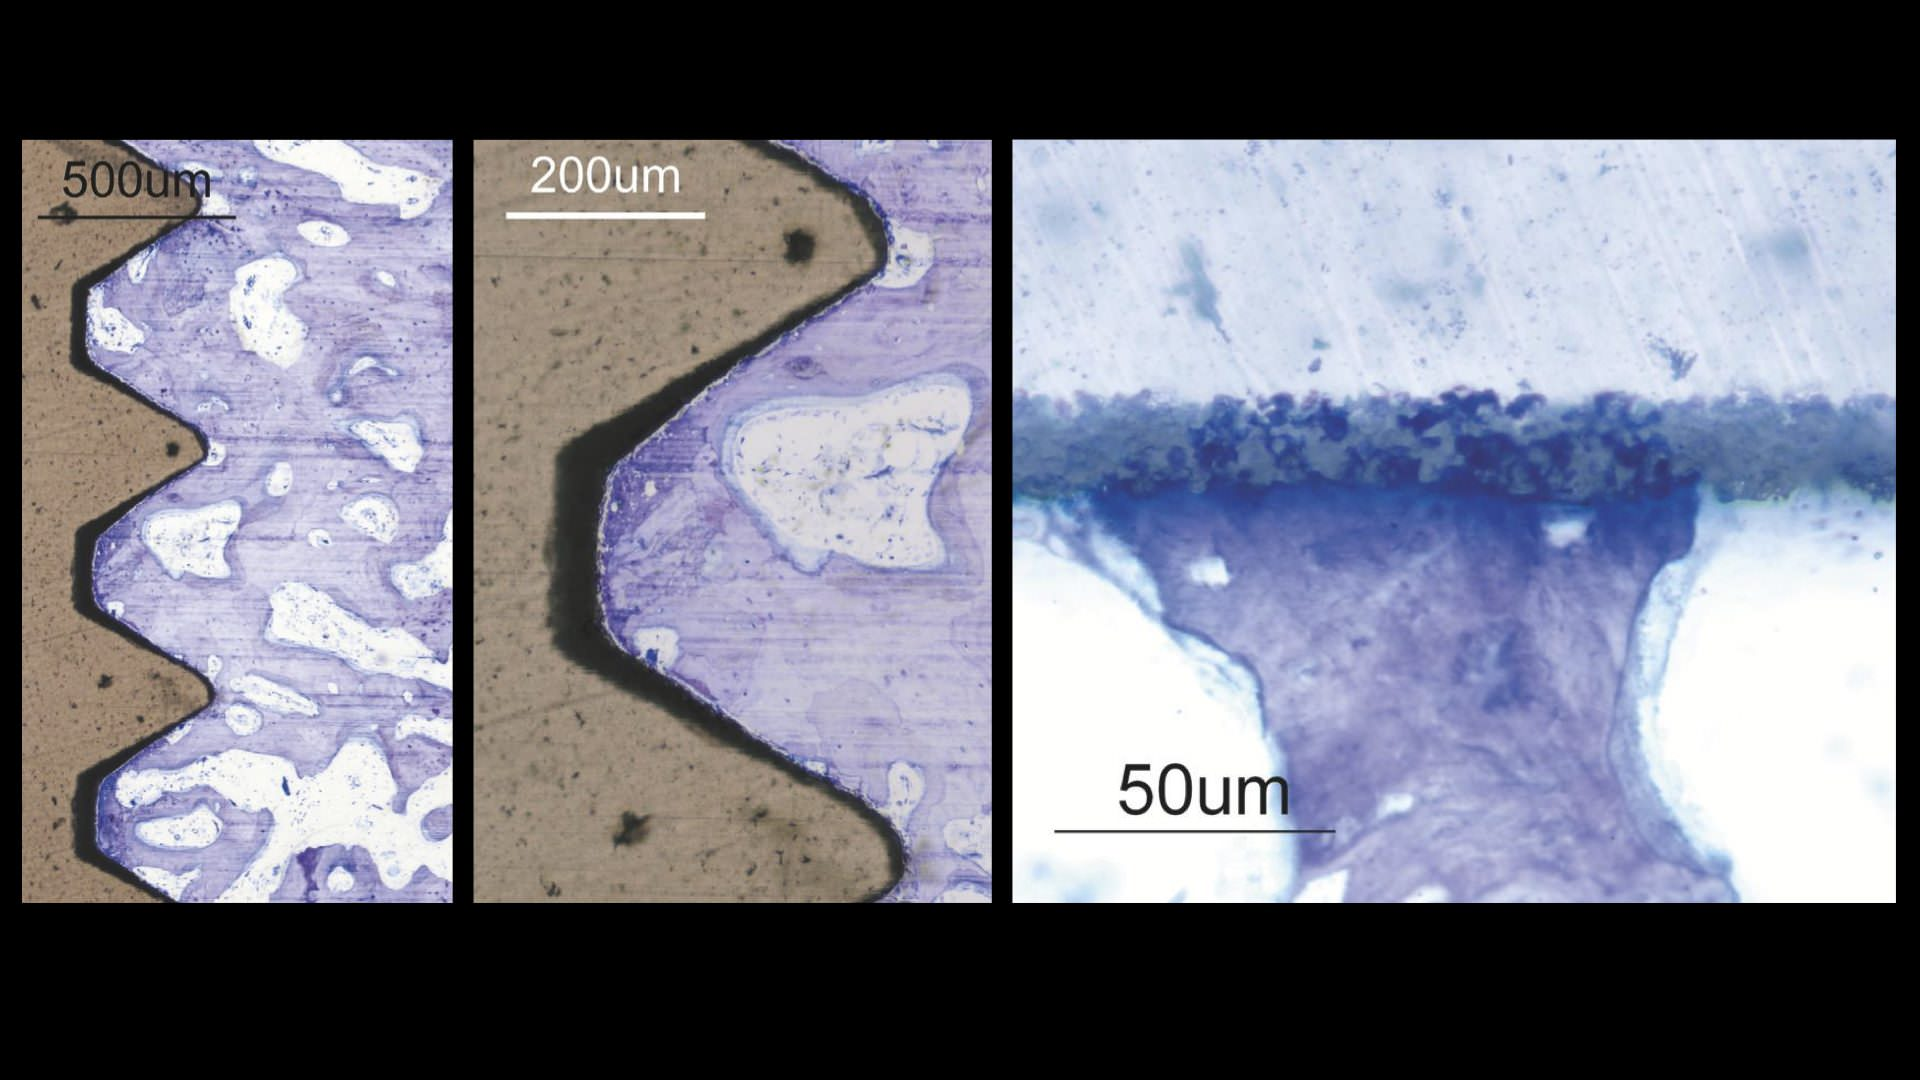 Histology for the Nobel Biocare Implant made of Zirconia Ceramic